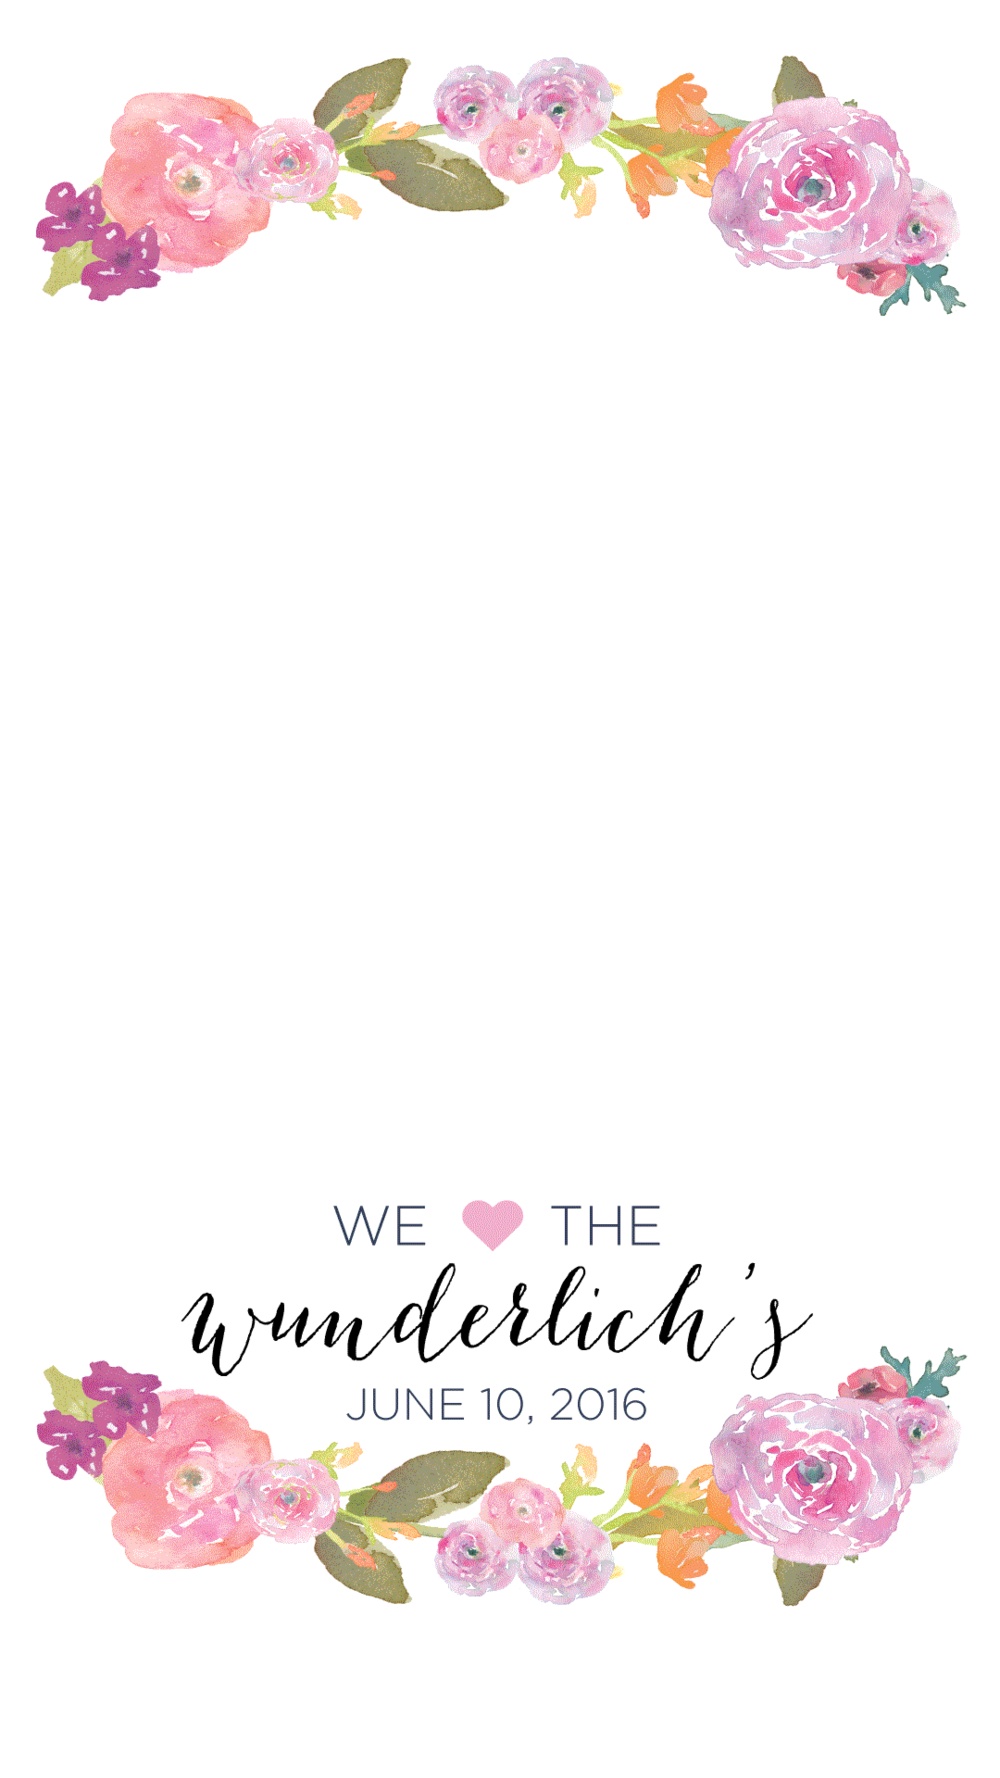 B&G-Geofilter.png